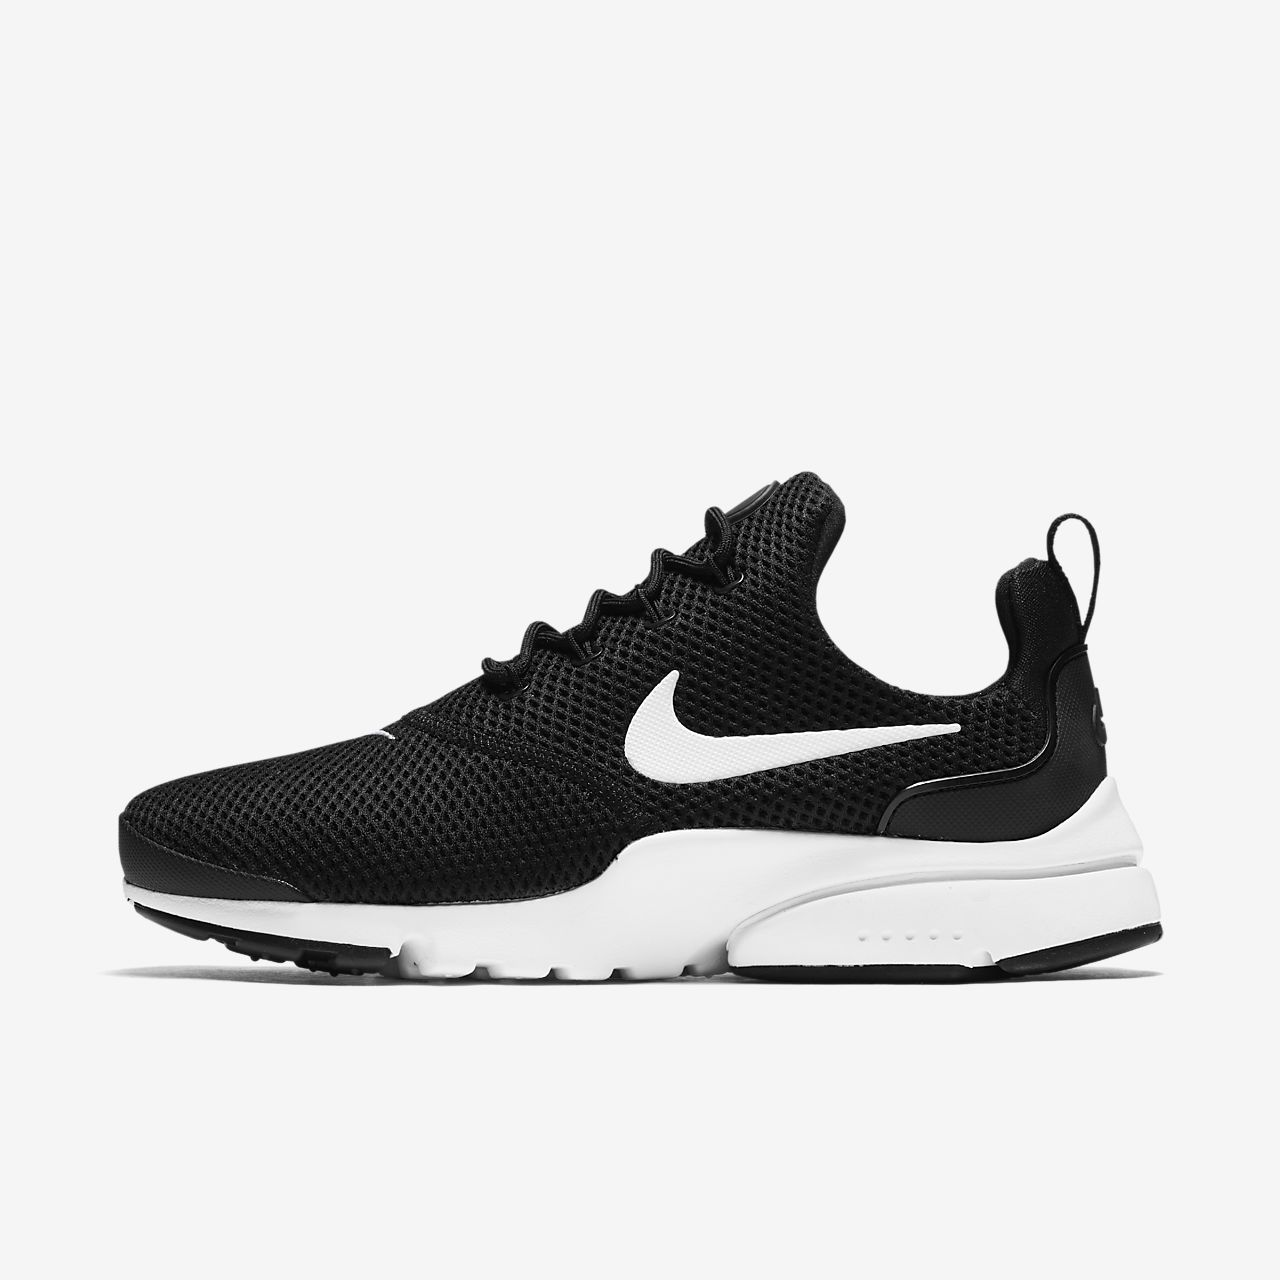 sports shoes 985f9 c0a23 ... Chaussure Nike Presto Fly pour Femme